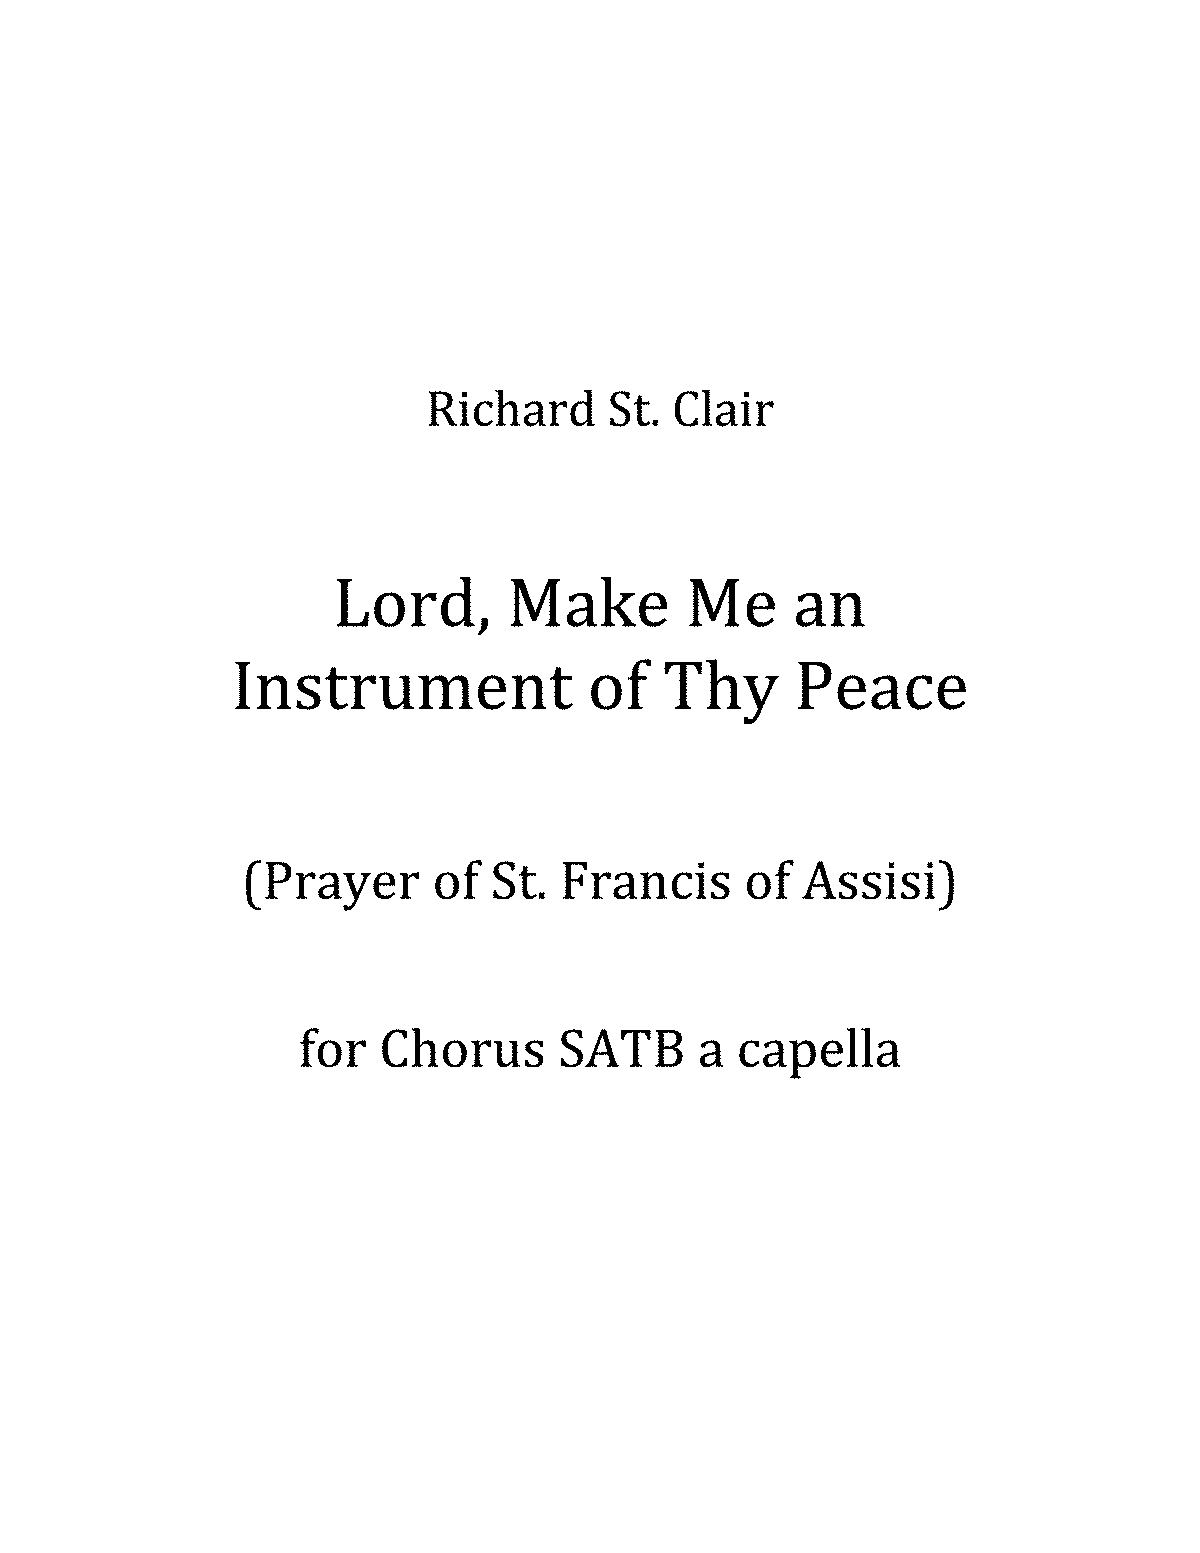 WIMA.7179-Lord-Make-Me-an-Instrument-of-Thy-Peace.pdf